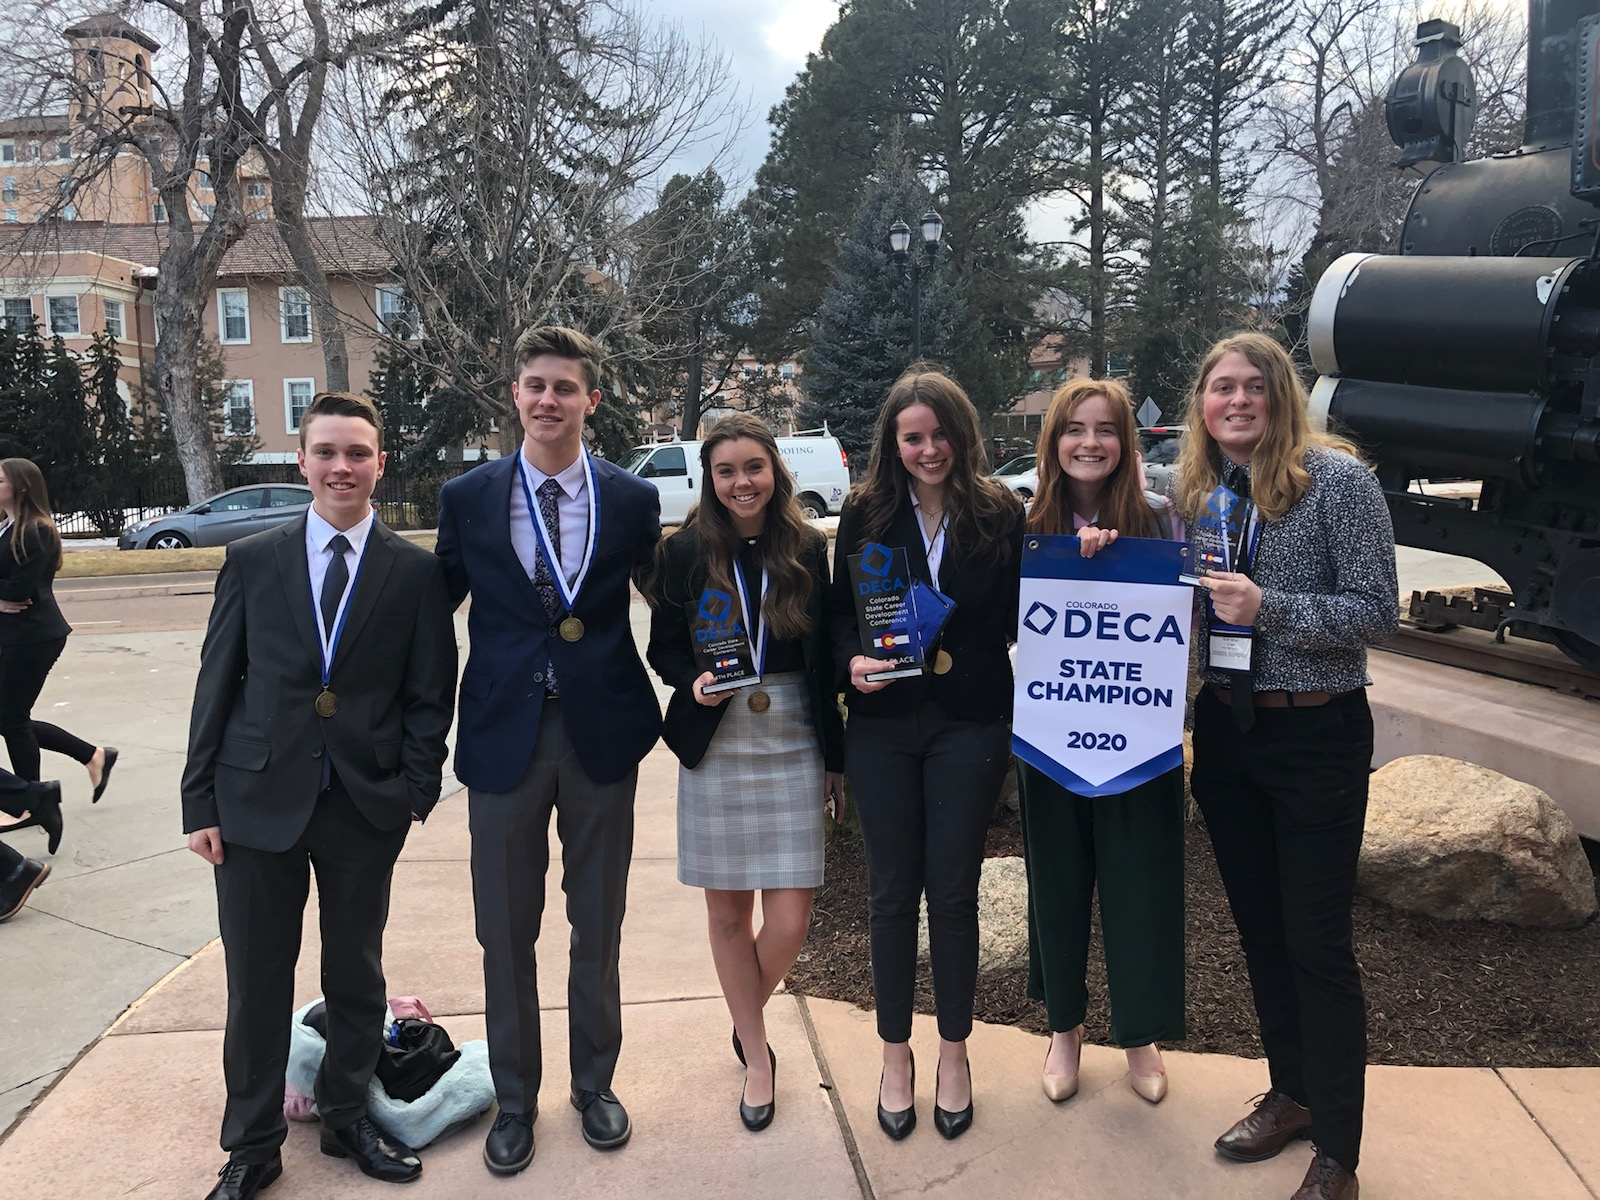 DECA State Recognized